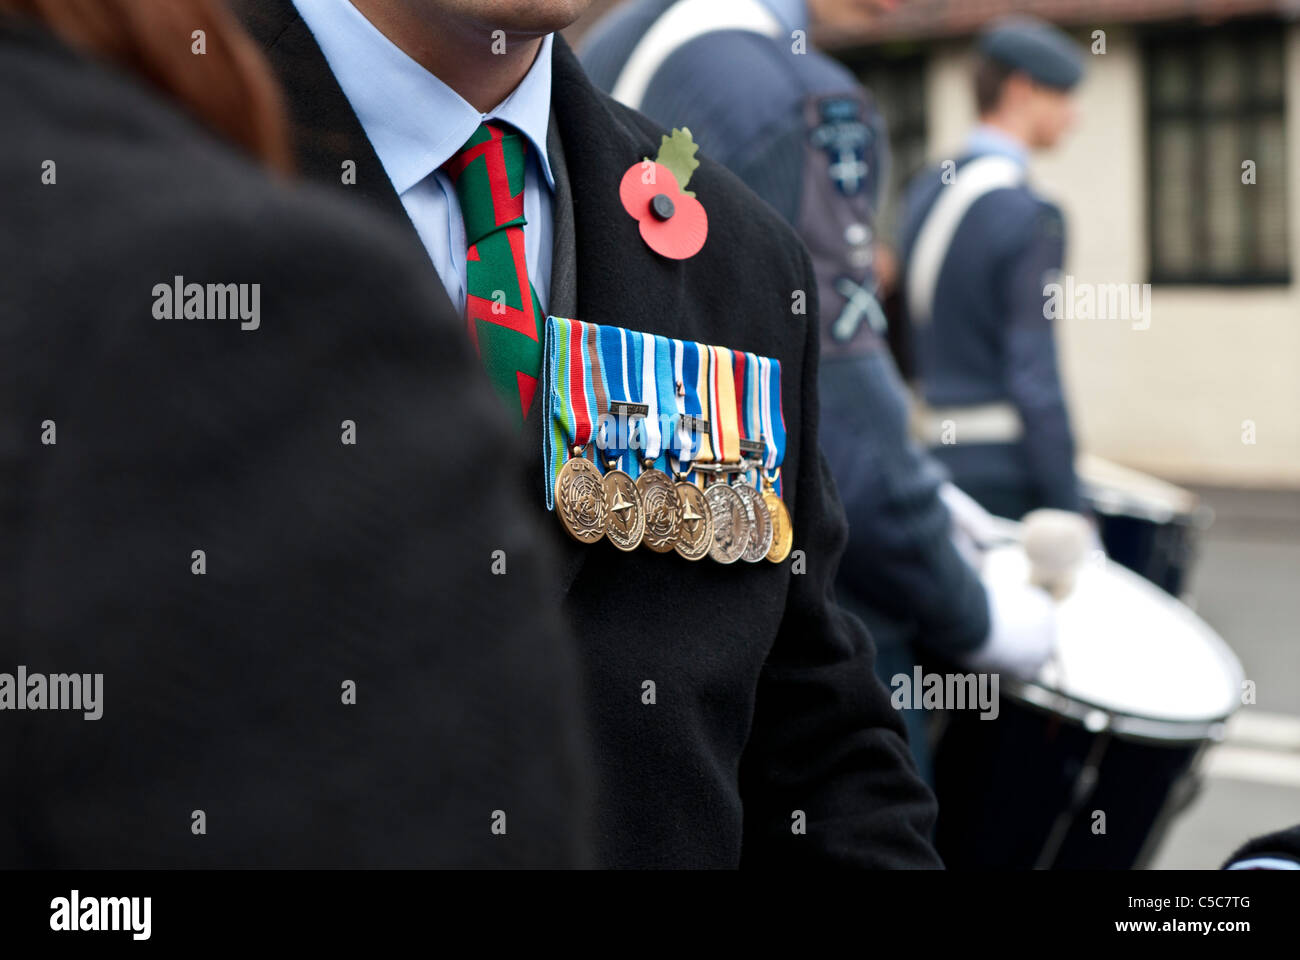 Ex Soldier wearing medals and a Poppy at Remembrance Day parade. England UK - Stock Image